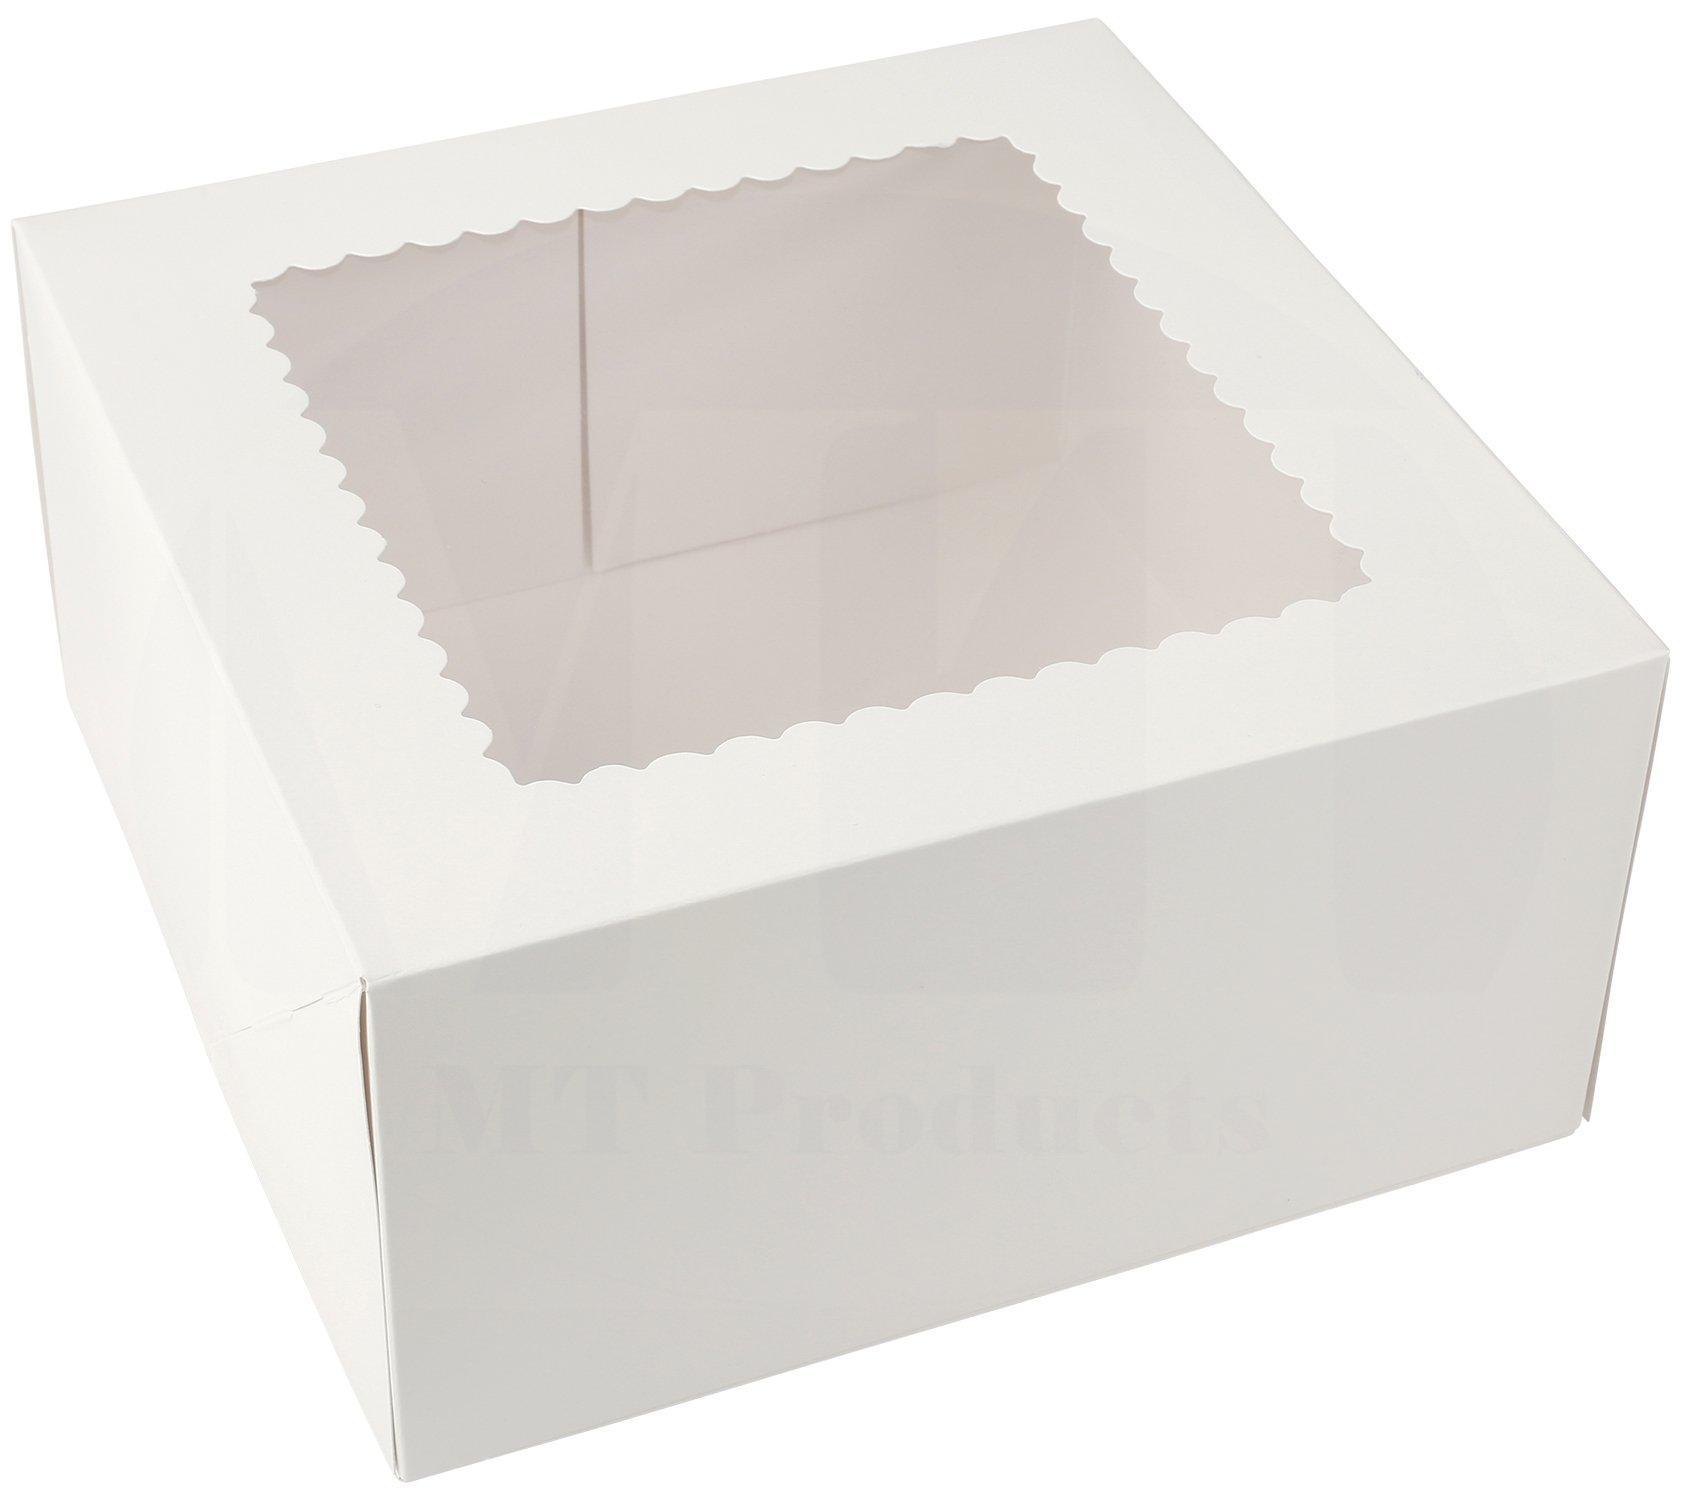 10'' Length x 10'' Width x 5'' Height White Kraft Paperboard Auto-Popup Window Pie/Cake Bakery Box by MT Products (Pack of 15) by MT Products